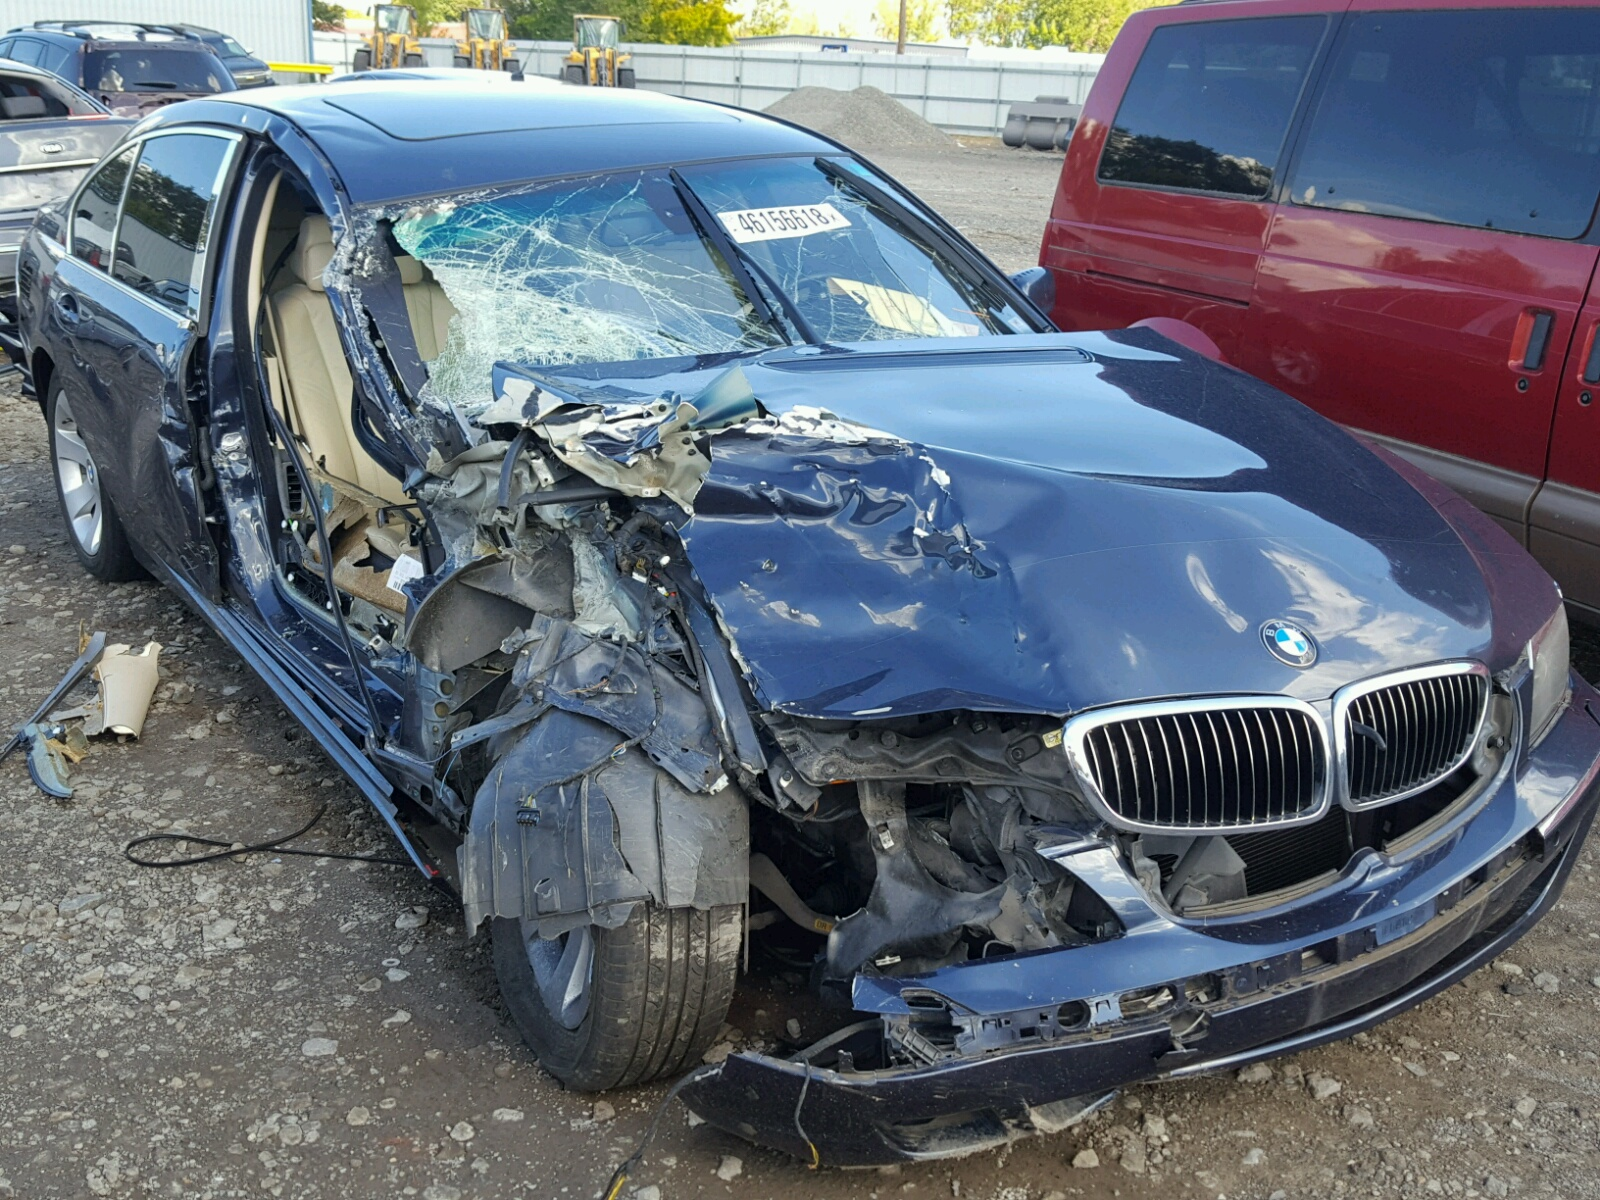 BMW Alpina B For Sale At Copart Portland OR Lot - 2007 alpina b7 for sale